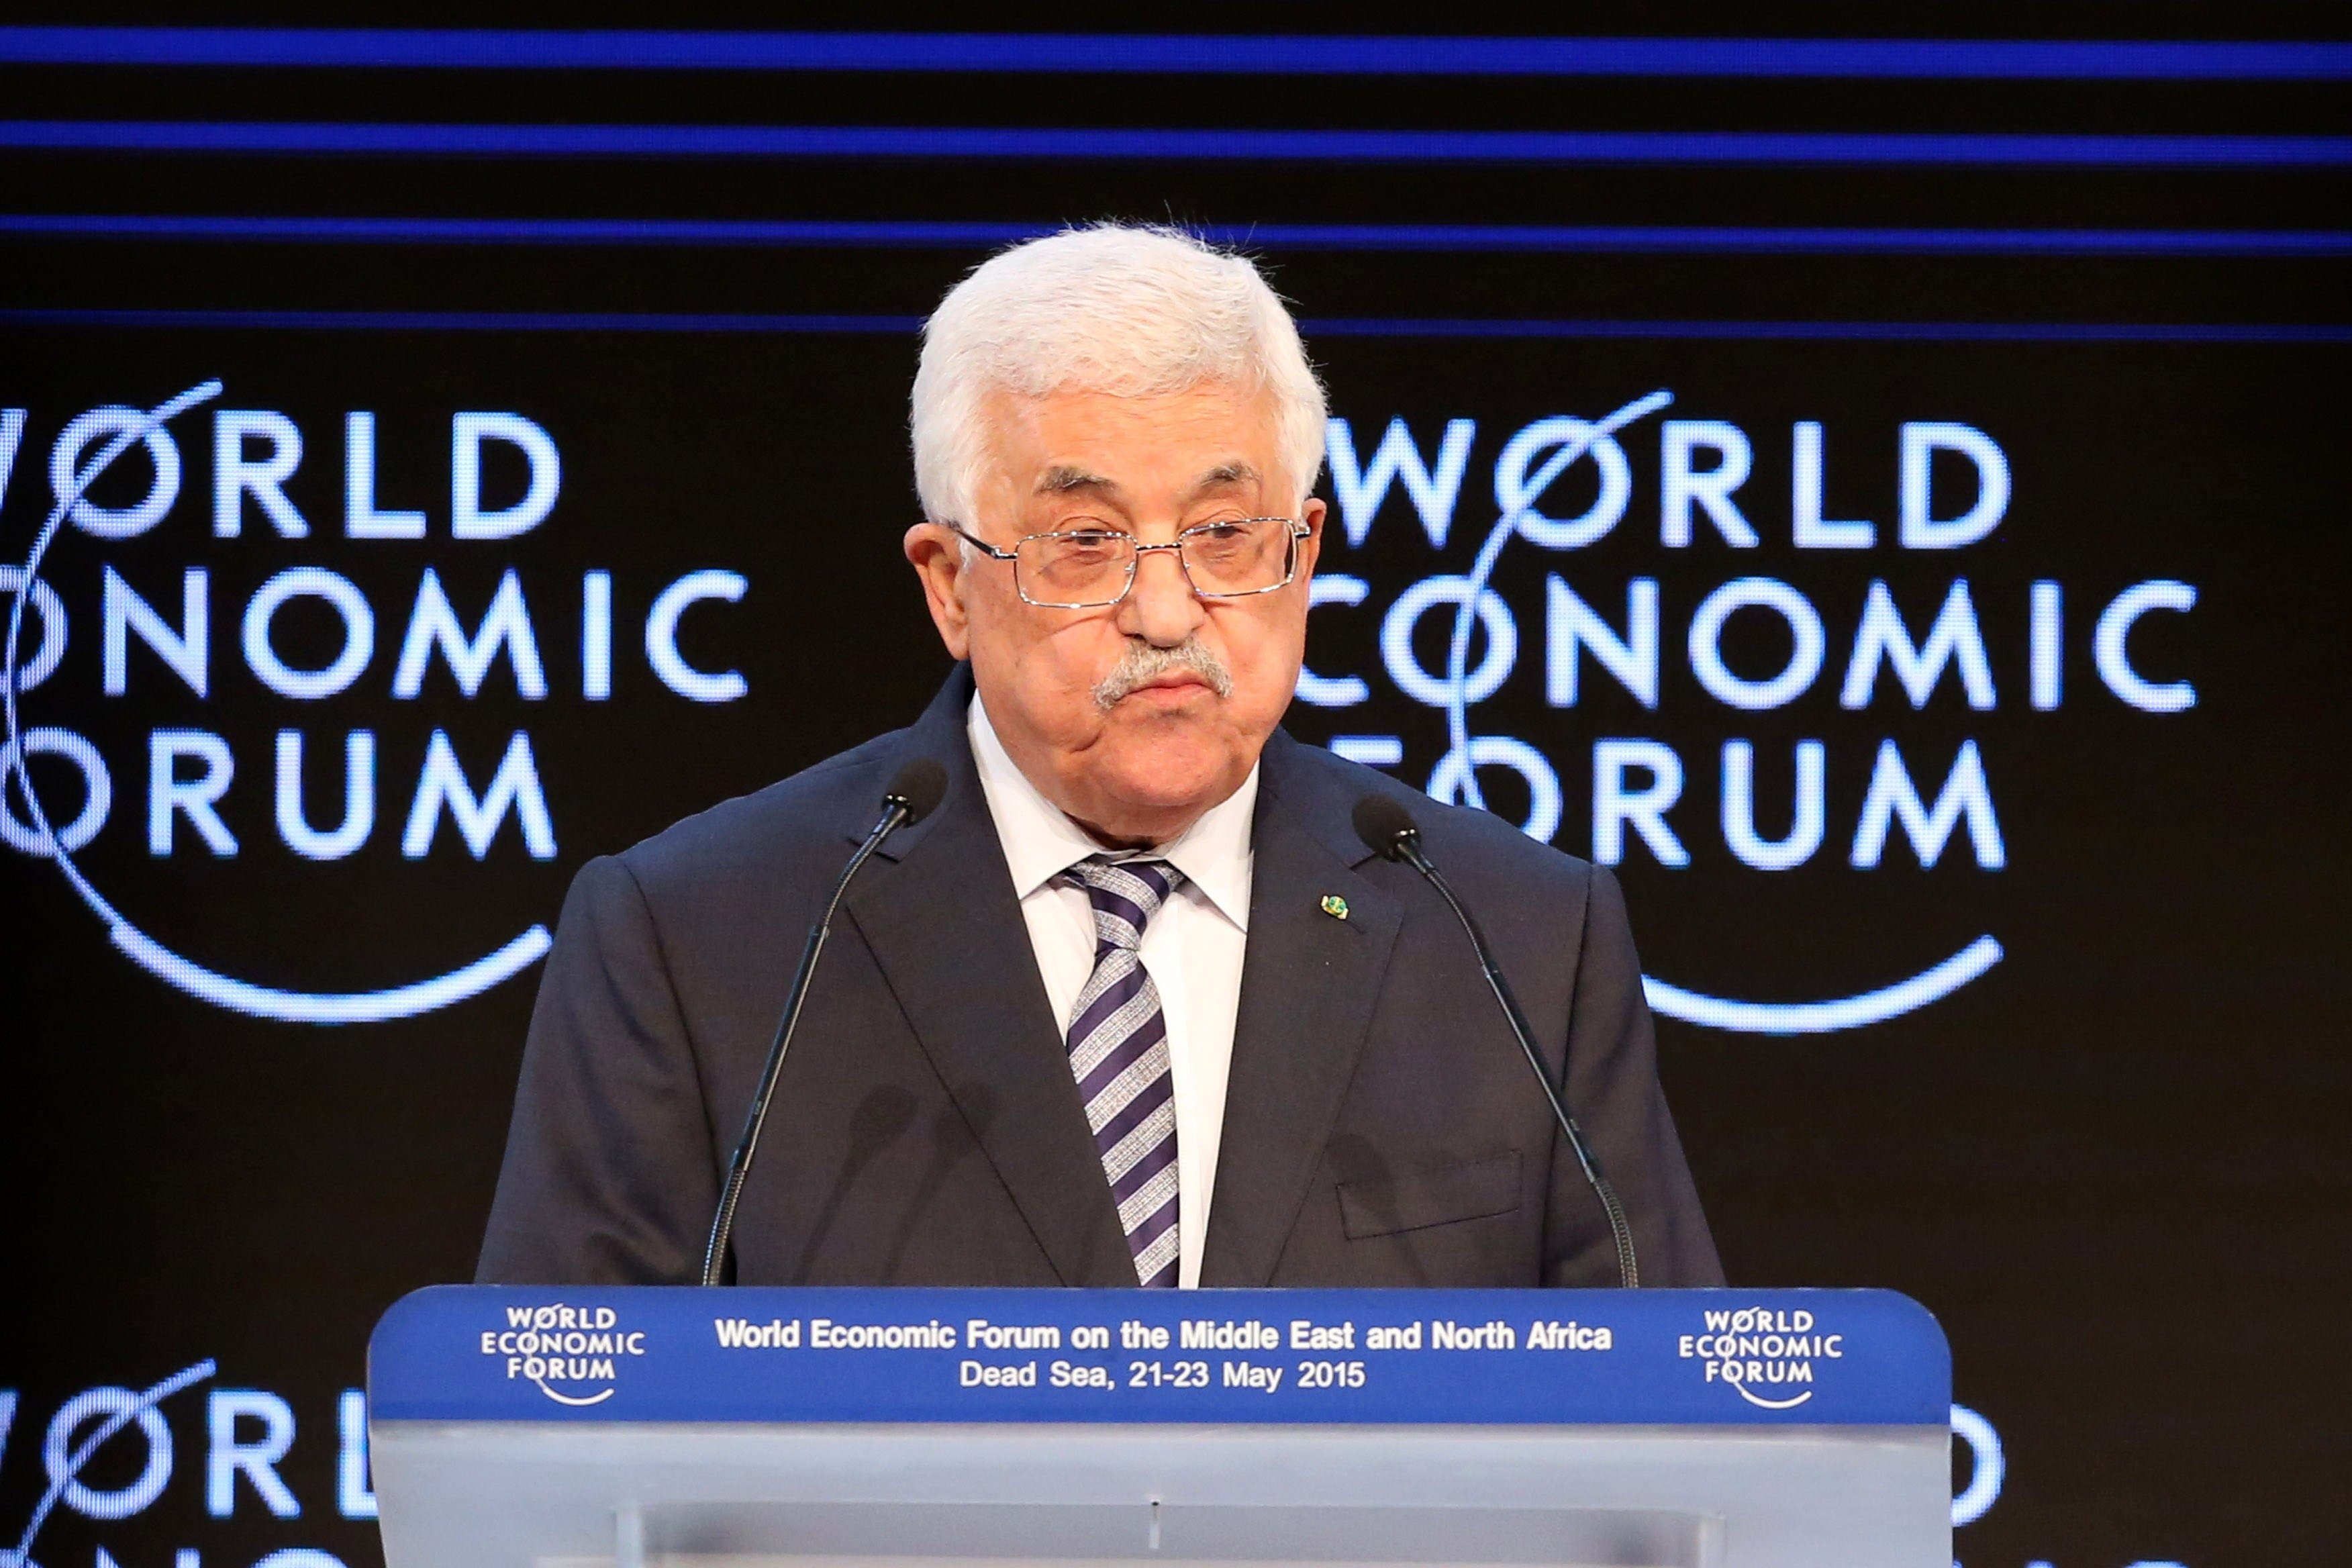 Palestinian leader Mahmoud Abbas gives a speech on the opening day of the World Economic Forum (WEF) on the Middle East and North Africa 2015 on May 22, 2015 in the Dead Sea resort of Shuneh, west of the capital Jordanian Amman. AFP PHOTO / KHALIL MAZRAAWI